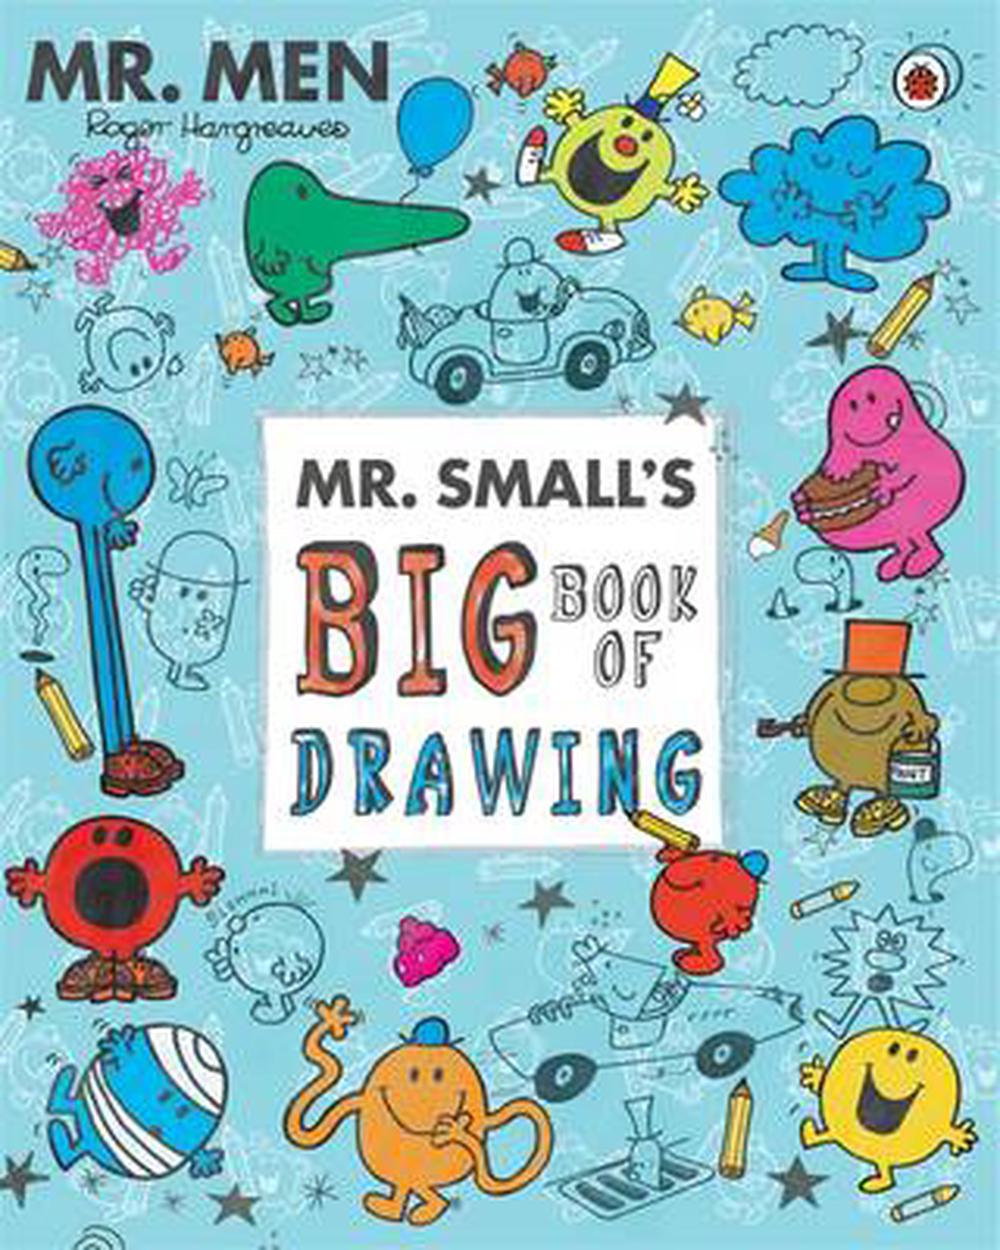 Mr Men and Little Miss: Mr Small's Big Book of Drawing